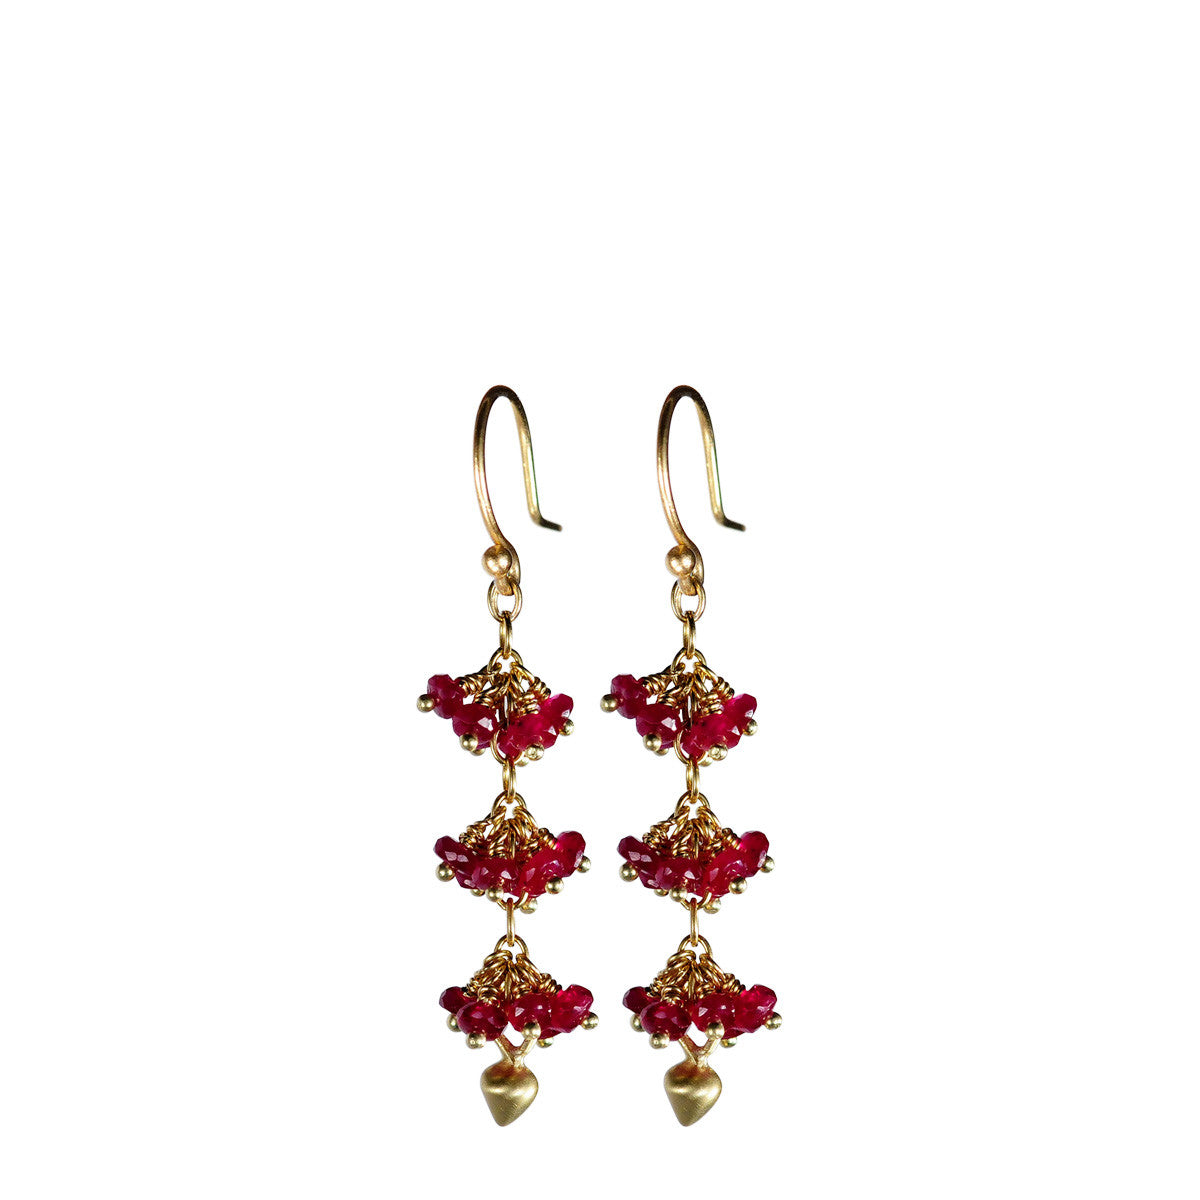 18K Gold 3 Beaded Ruby Cluster Earrings with Lotus Buds